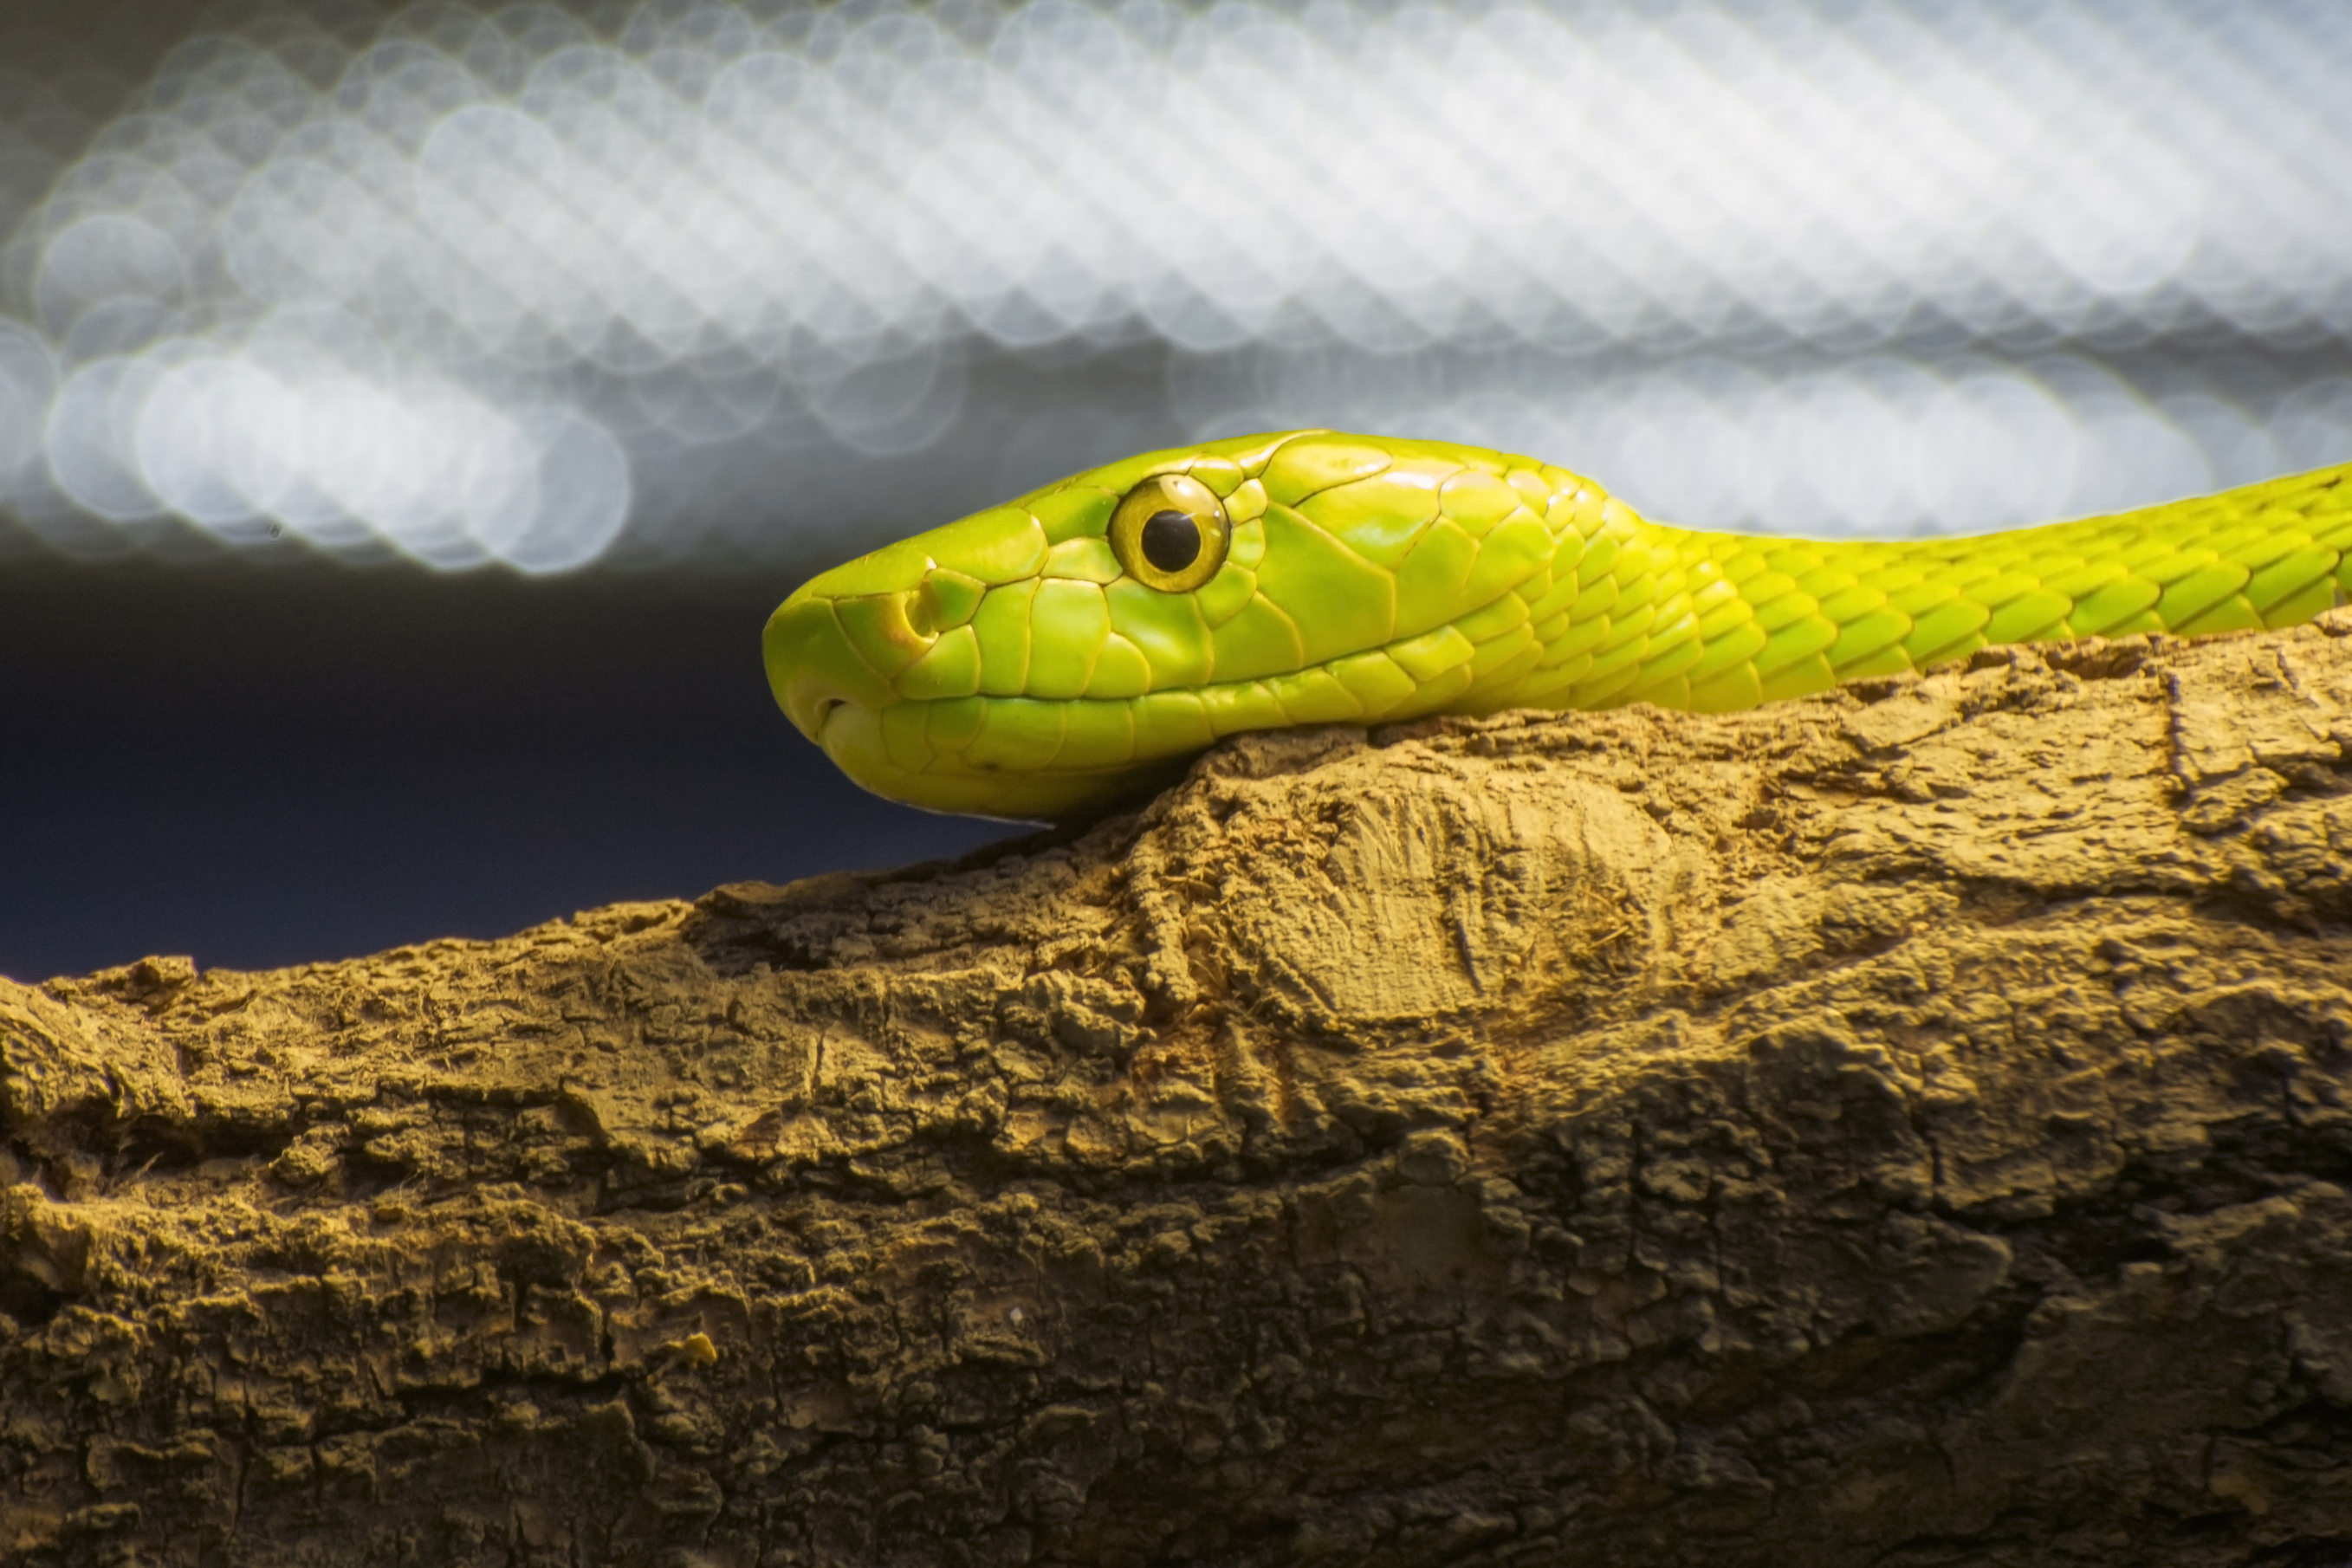 The snake was believed to have been a green mamba